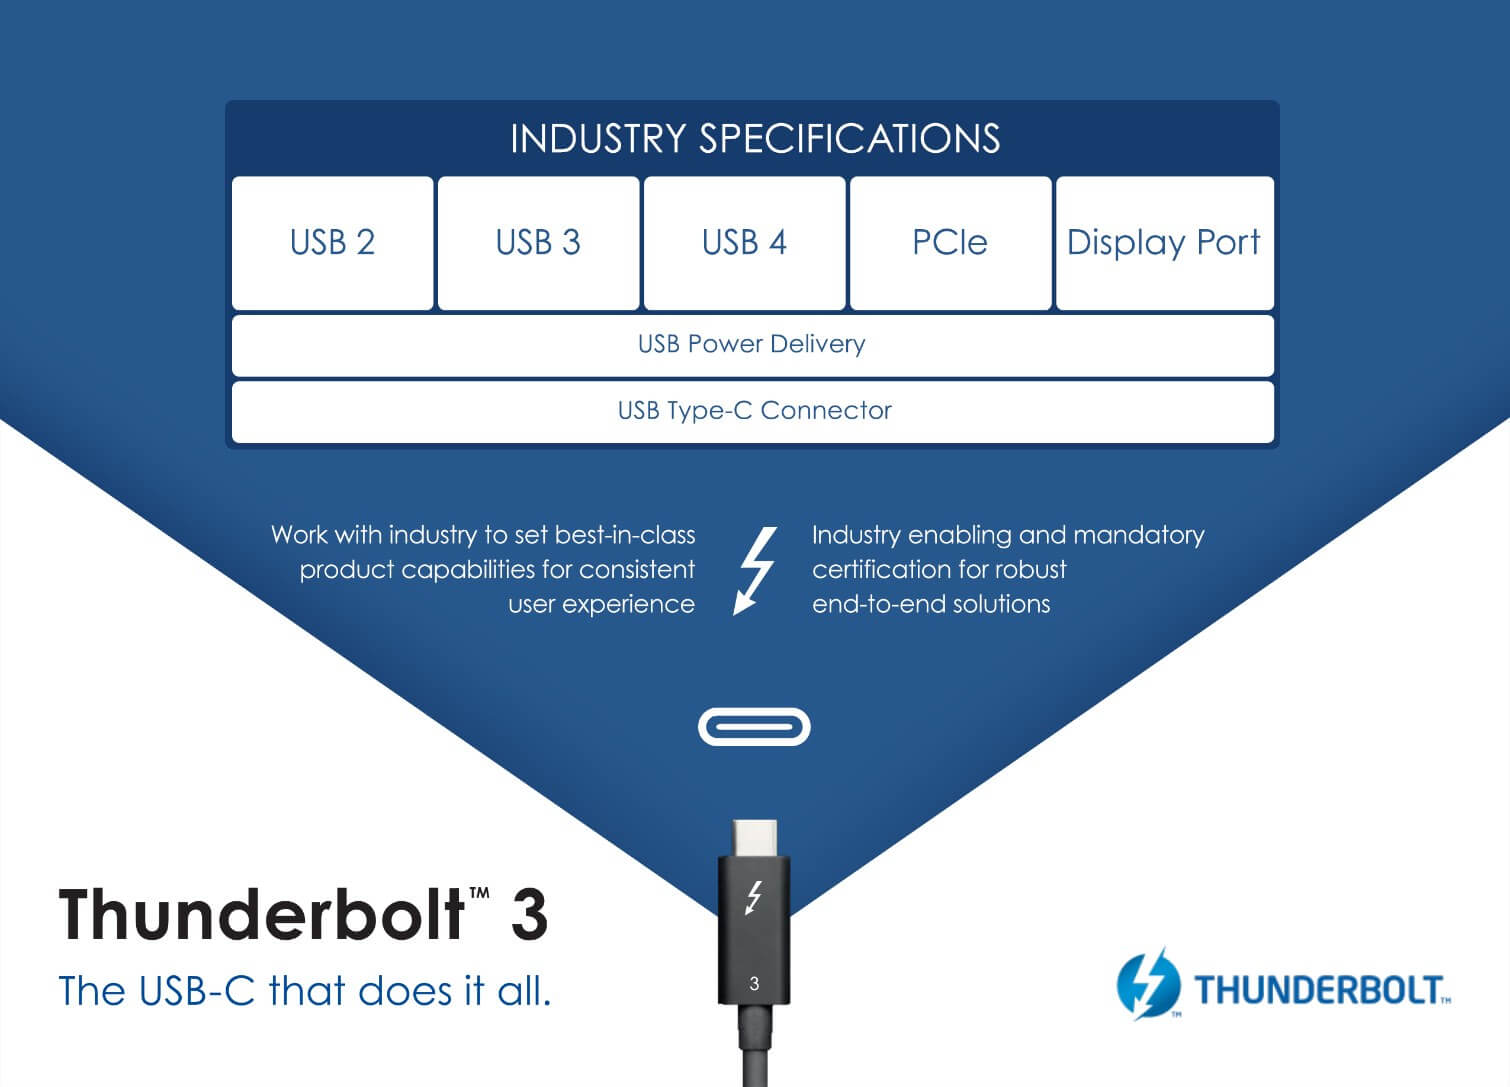 USB 4 has been announced, will match Thunderbolt 3's spec